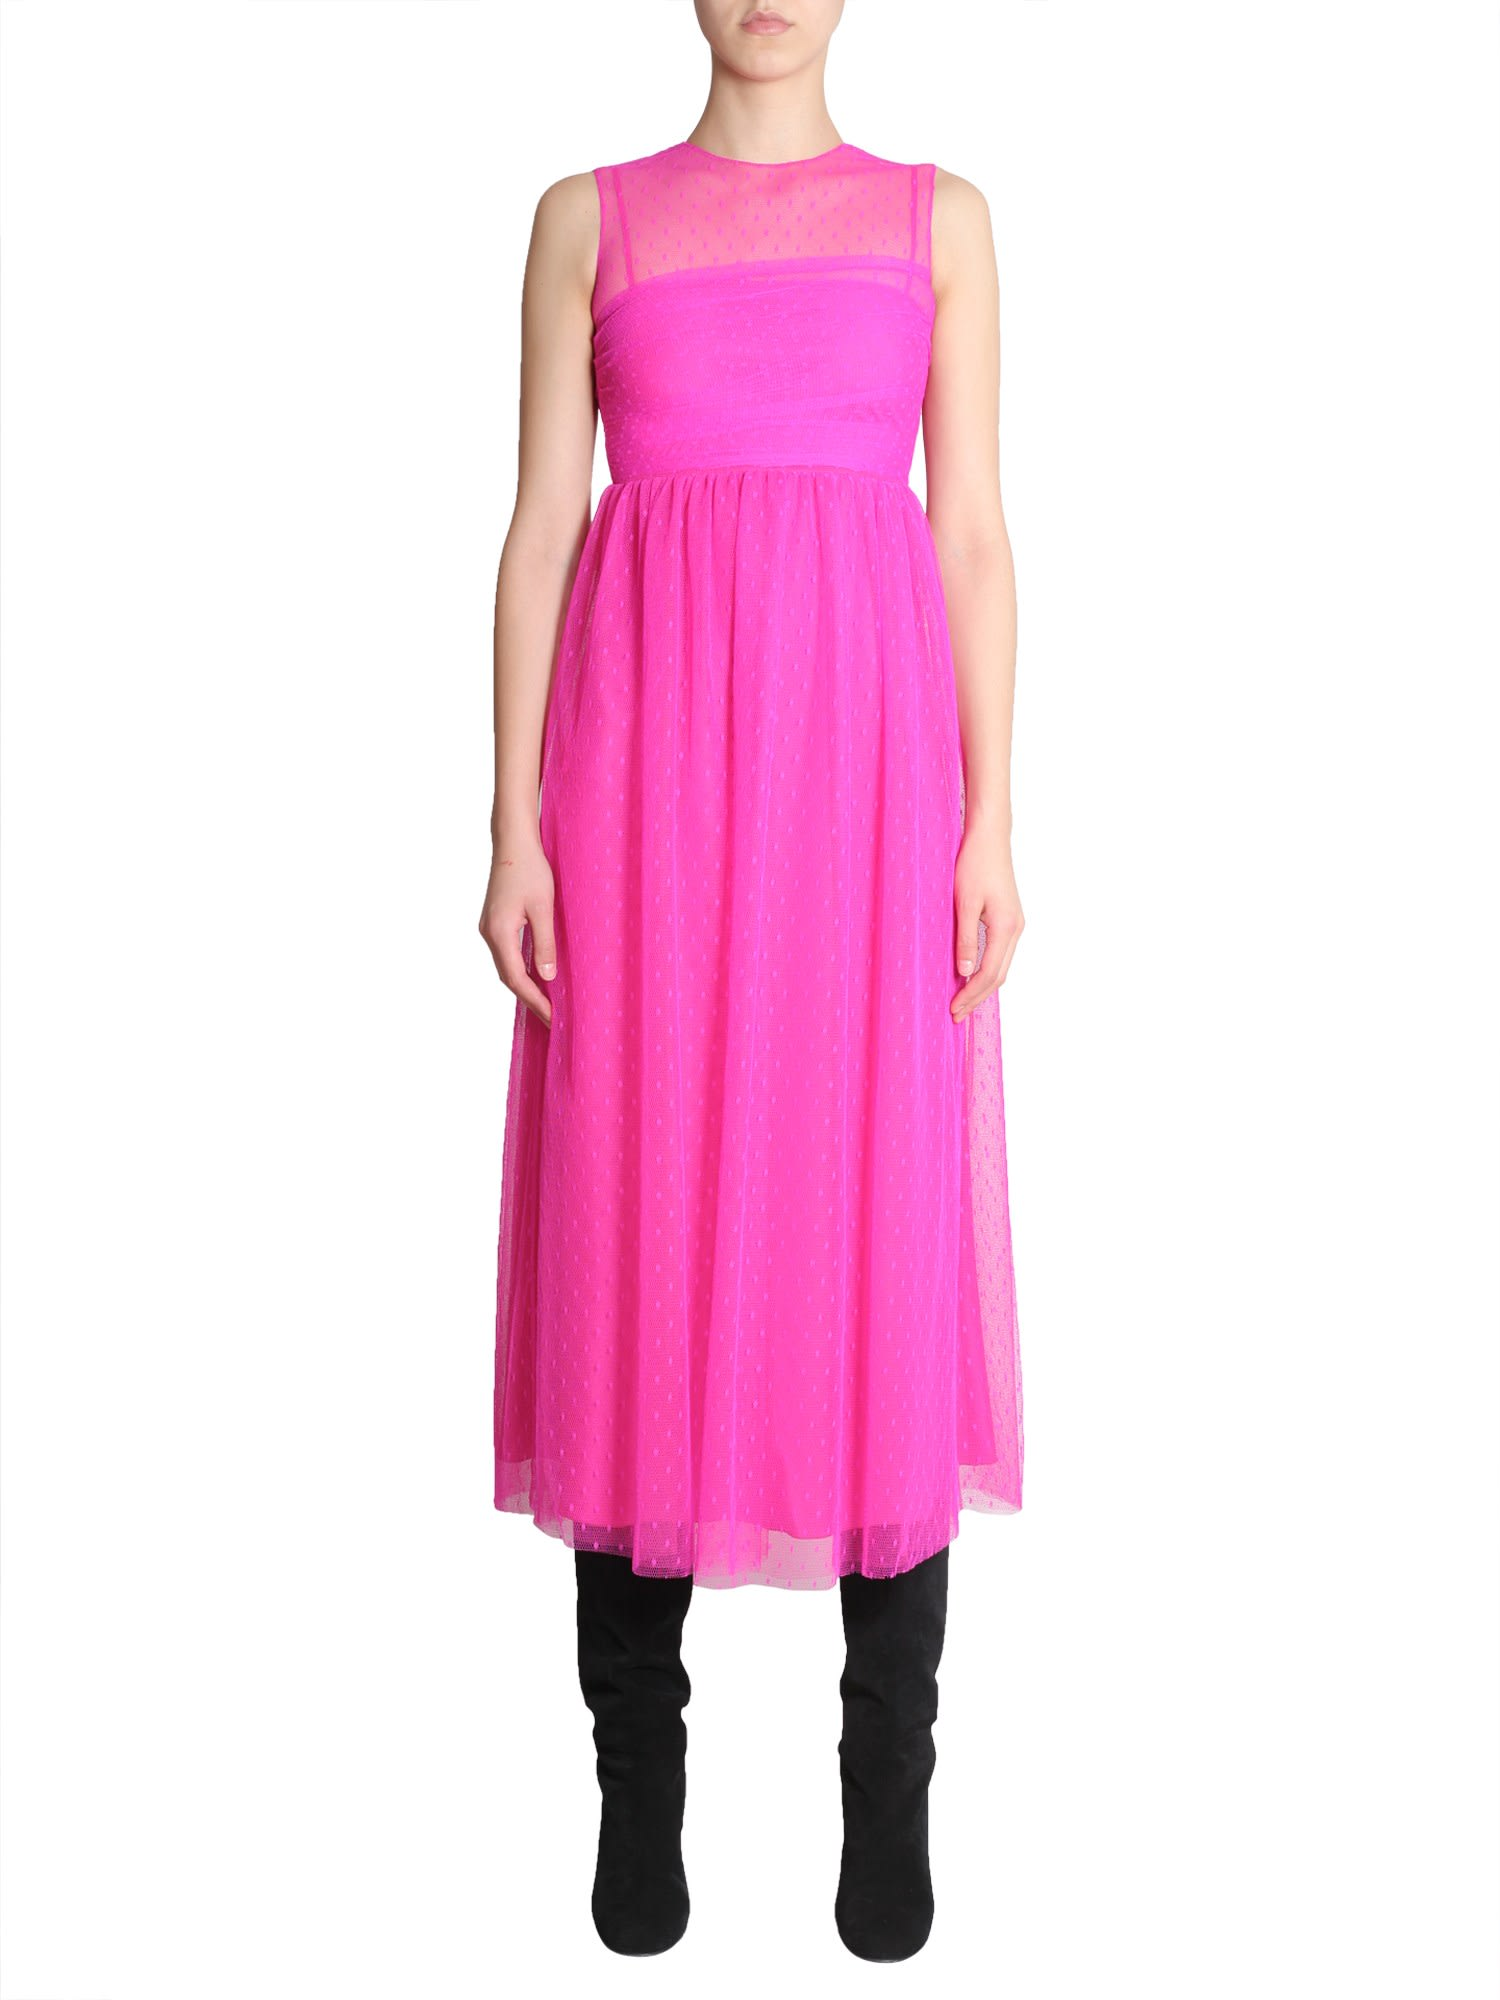 RED Valentino Sleeveless Dress